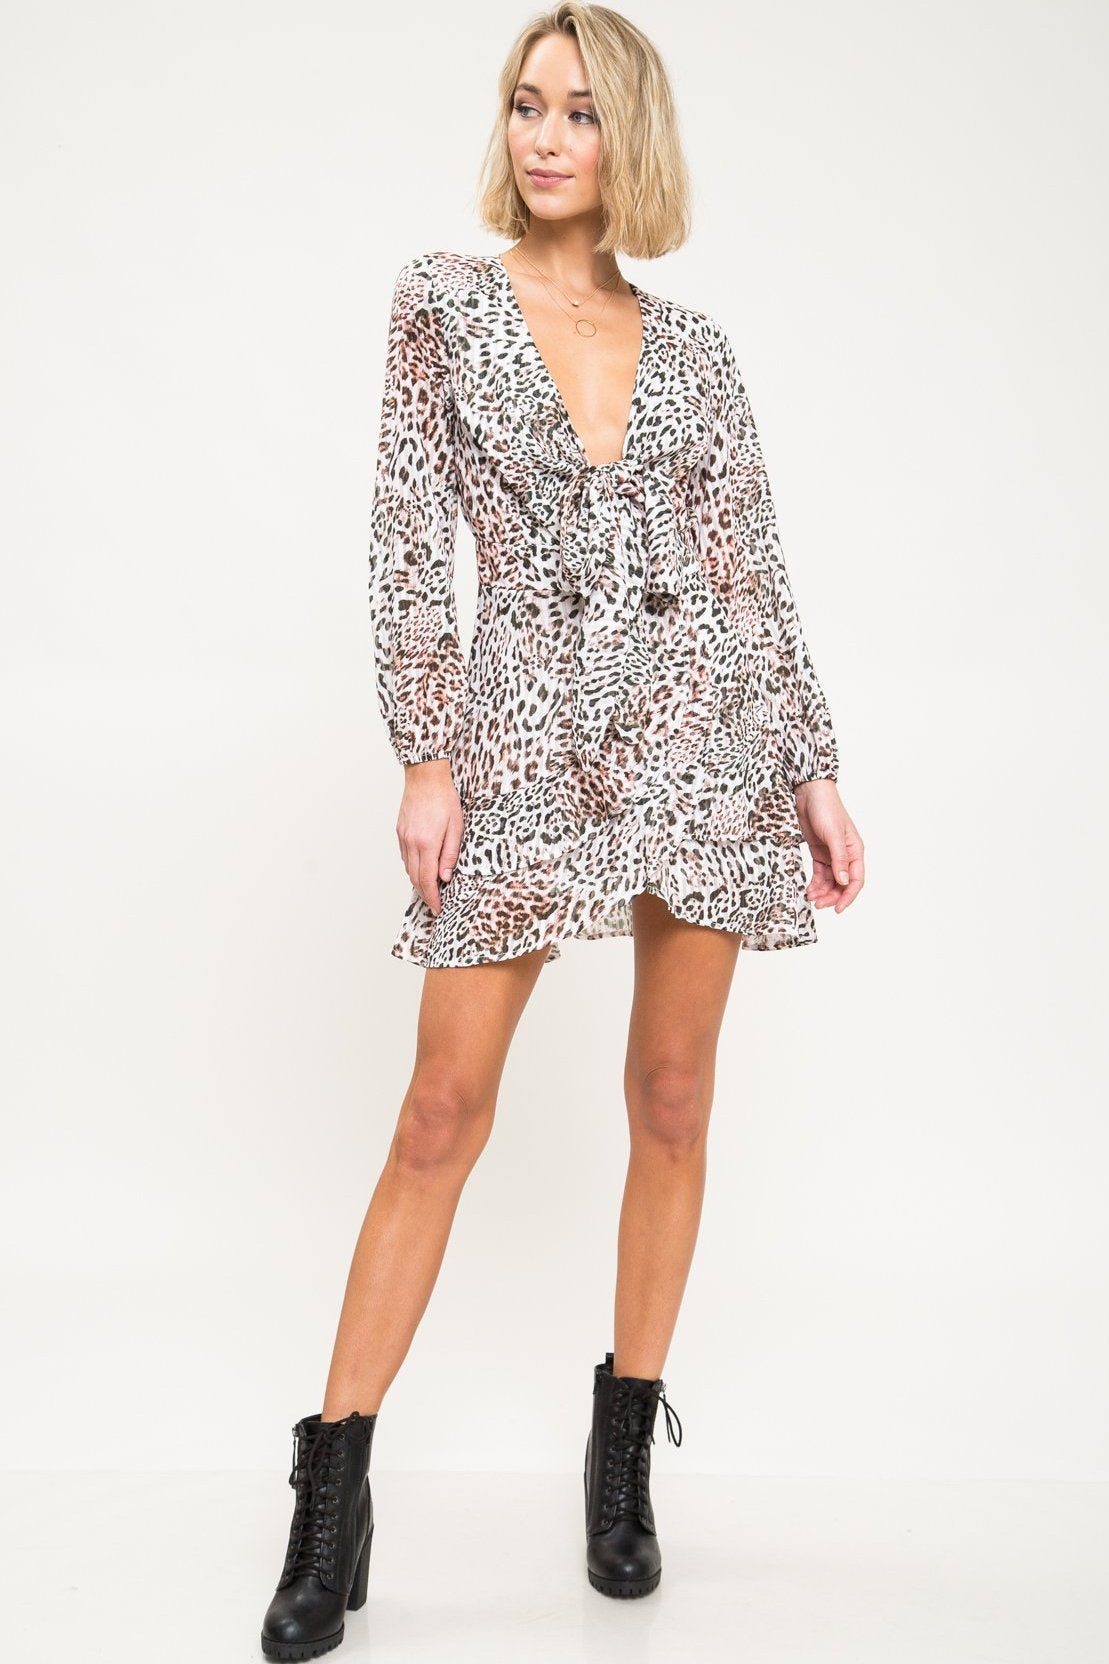 Kitty Leopard Print Mini Dress - Geegeebae